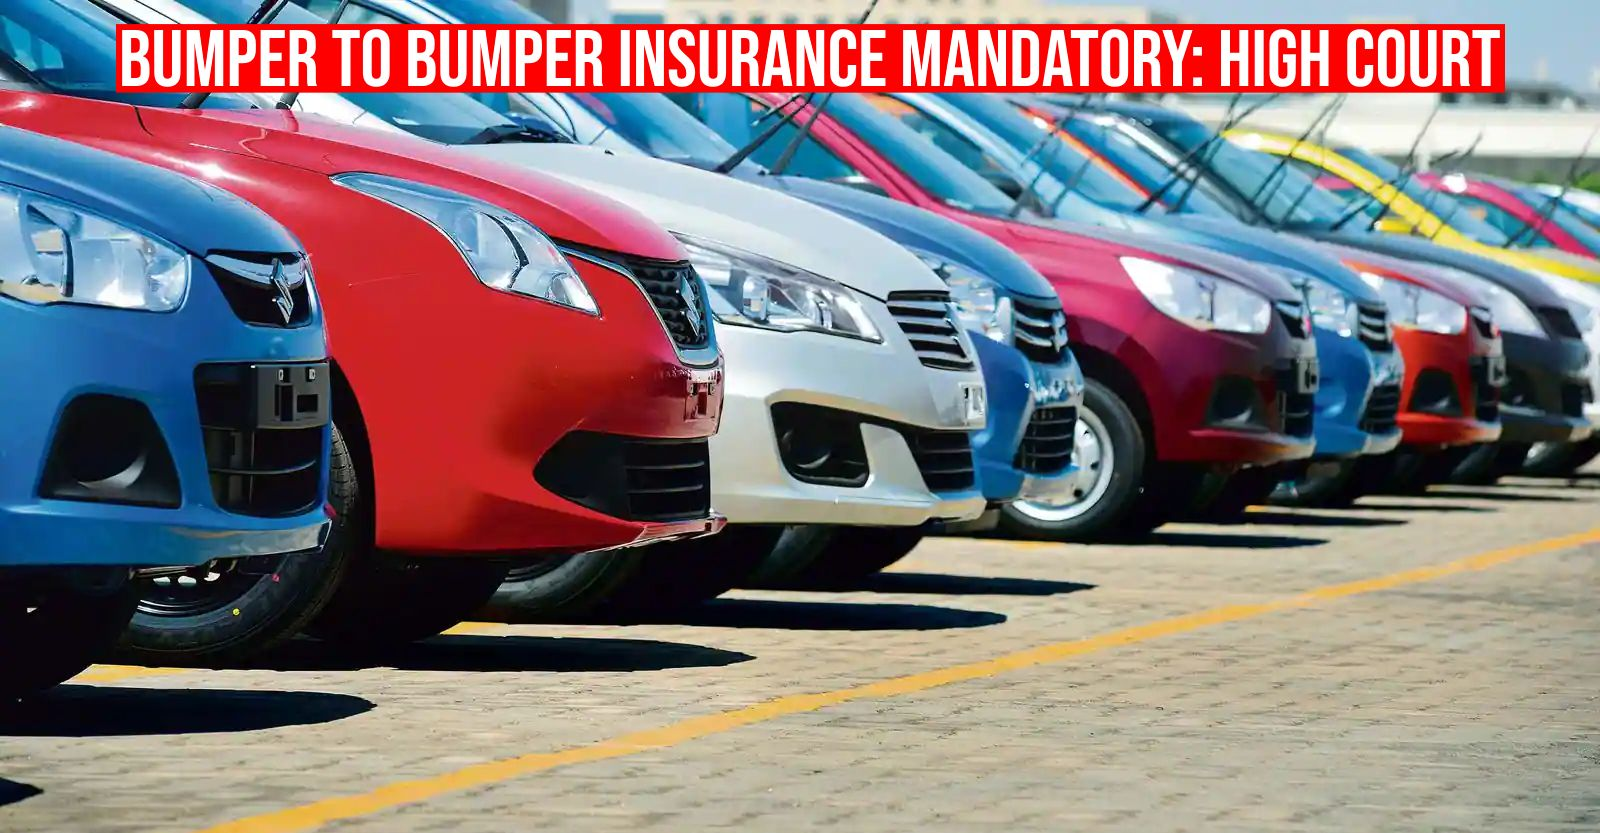 5 year Bumper-to-Bumper insurance  mandatory for new vehicles, says Madras HC